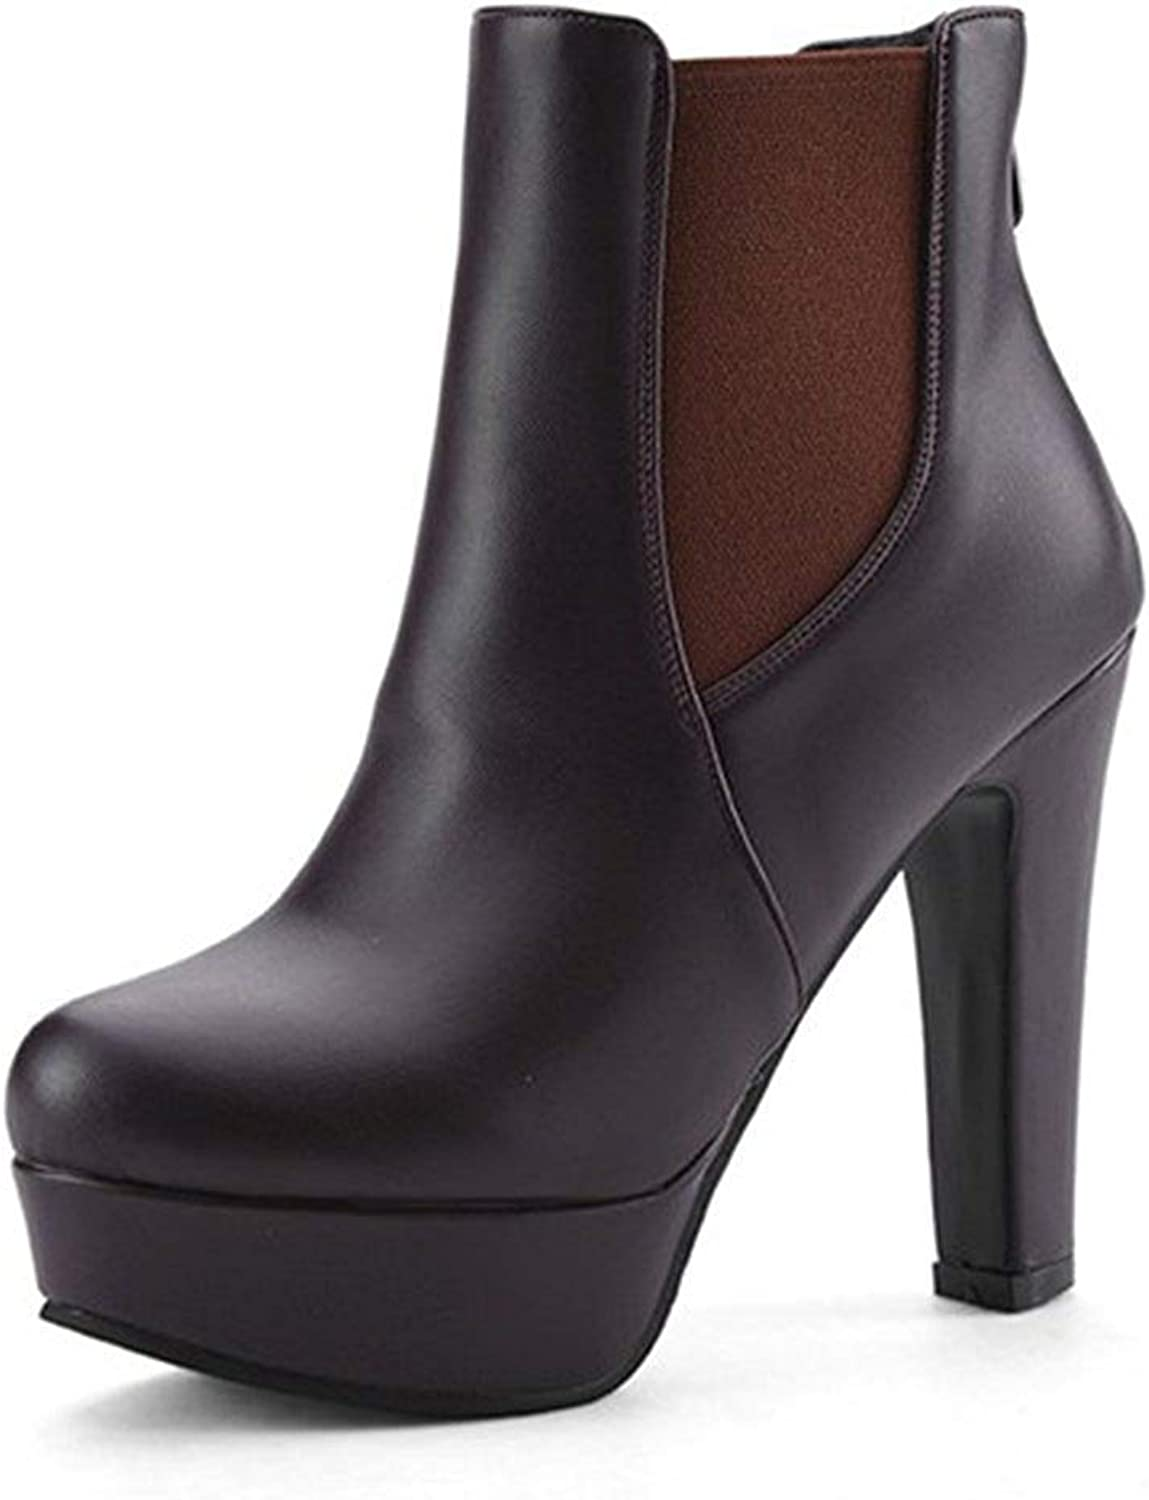 Unm Women's Fashion Round Toe Back Zipper Platform Chunky High Heels Booties Dress Ankle Boots shoes